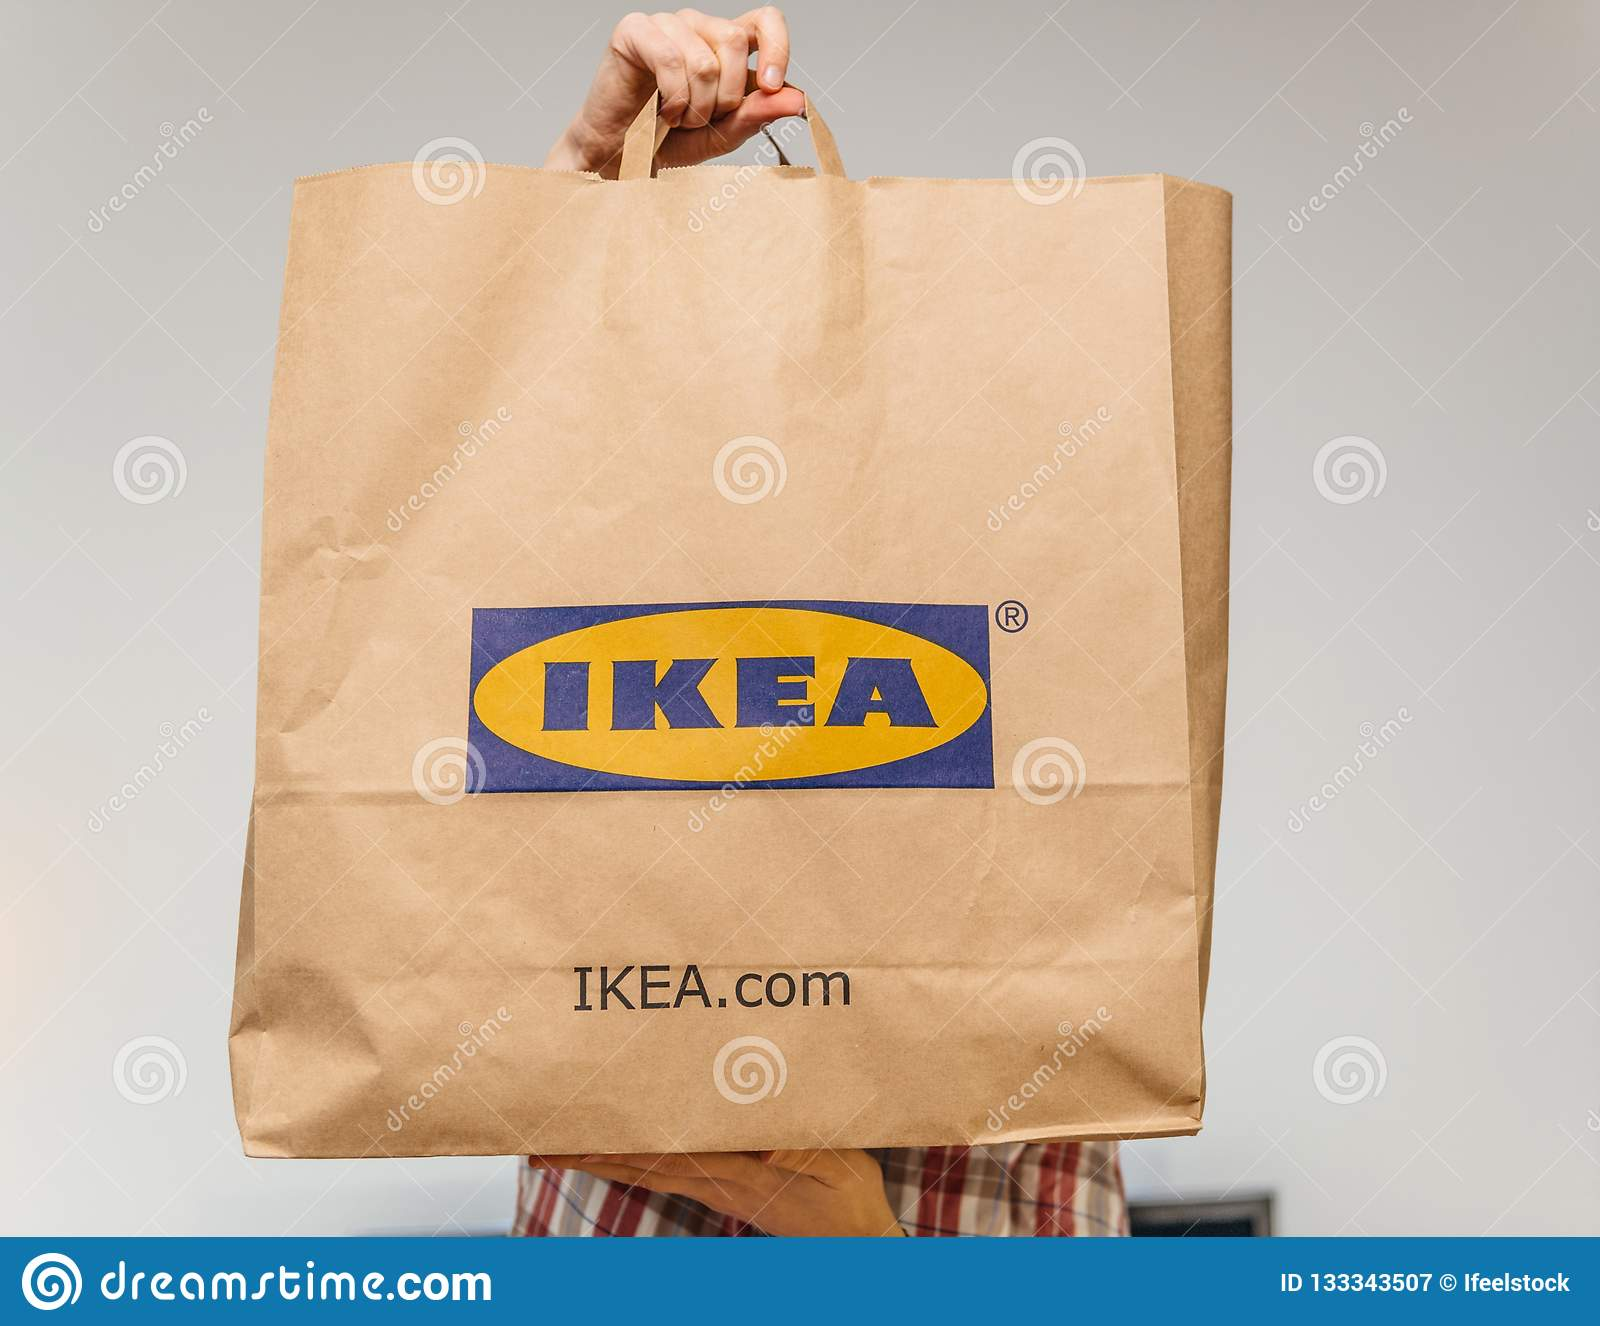 Ikea Front Woman With Big Ikea Paper Bag Unboxing Holding In Front Editorial